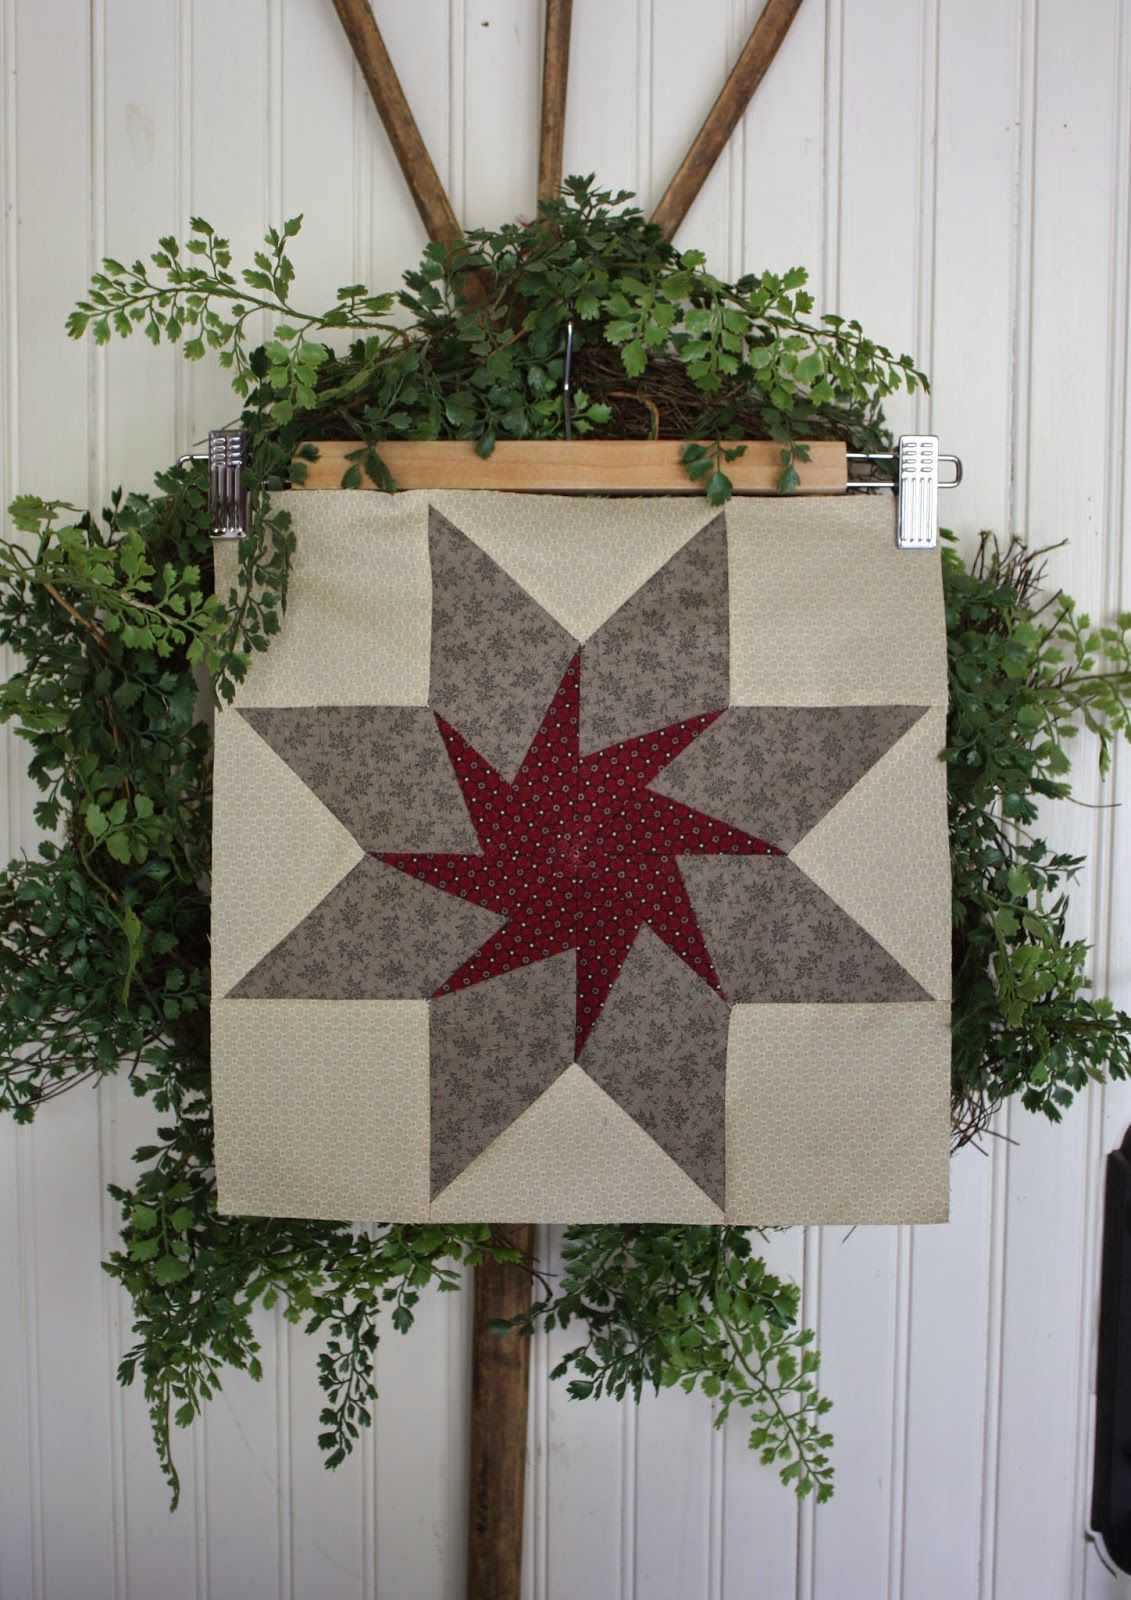 Threads of Memory (Temecula Quilt Co)